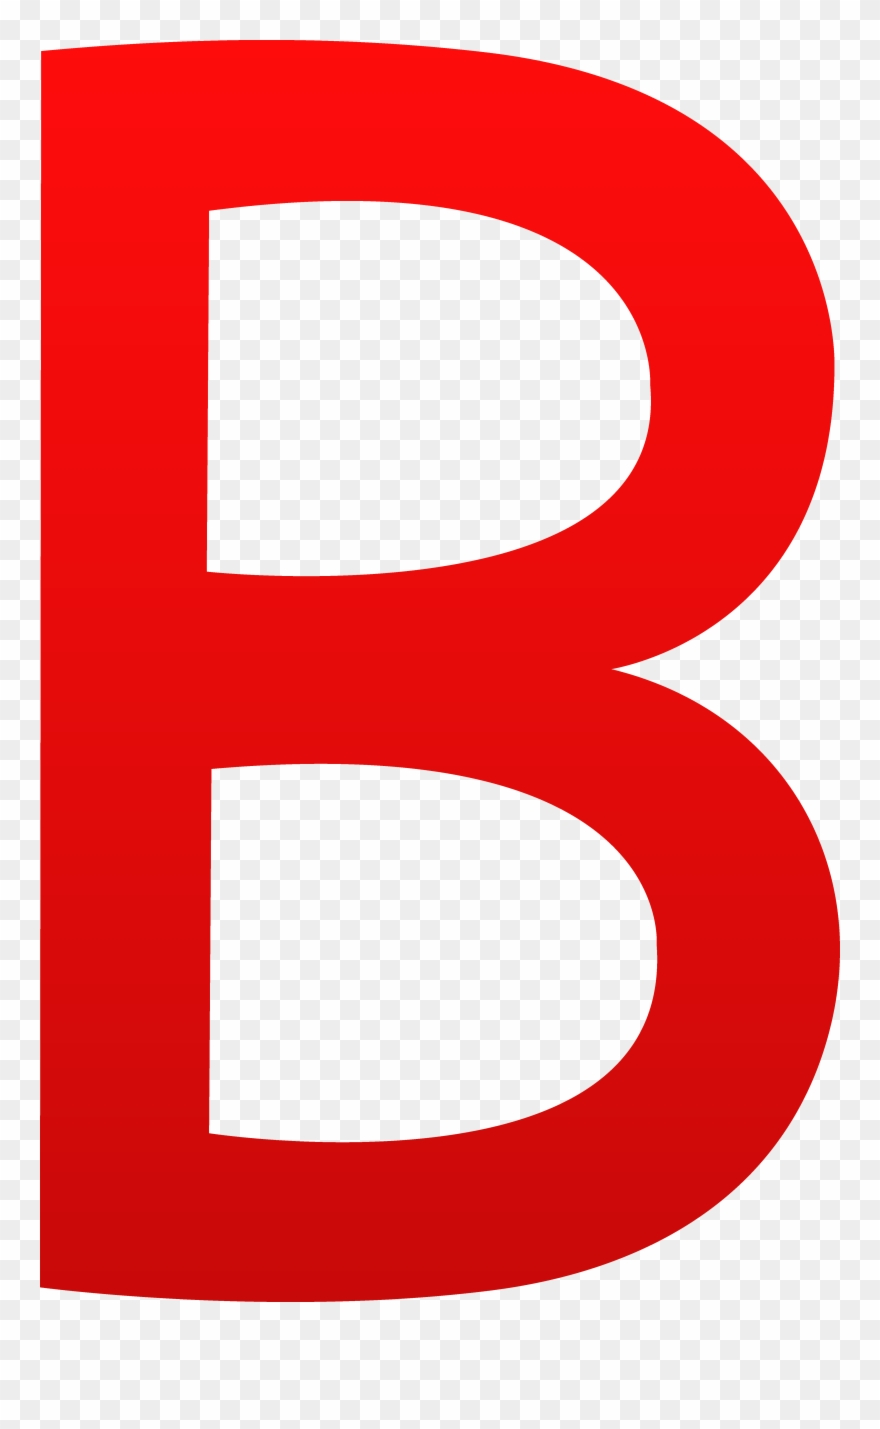 B clipart red. The letter png download